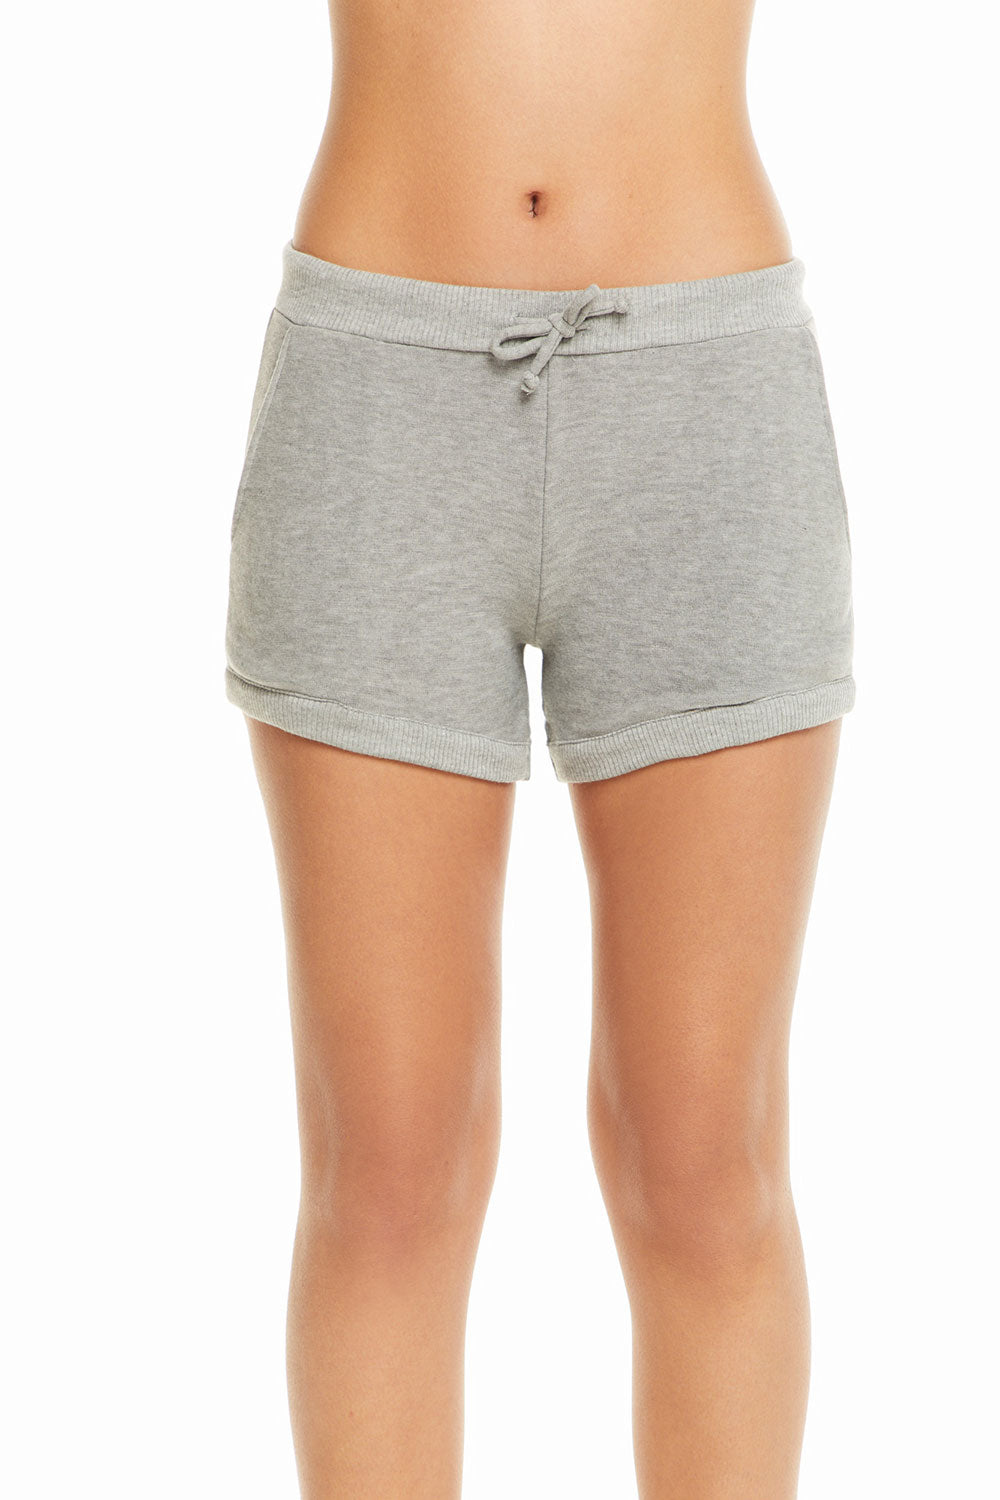 Cozy Knit Drawstring Lounge Short, WOMENS, chaserbrand.com,chaser clothing,chaser apparel,chaser los angeles